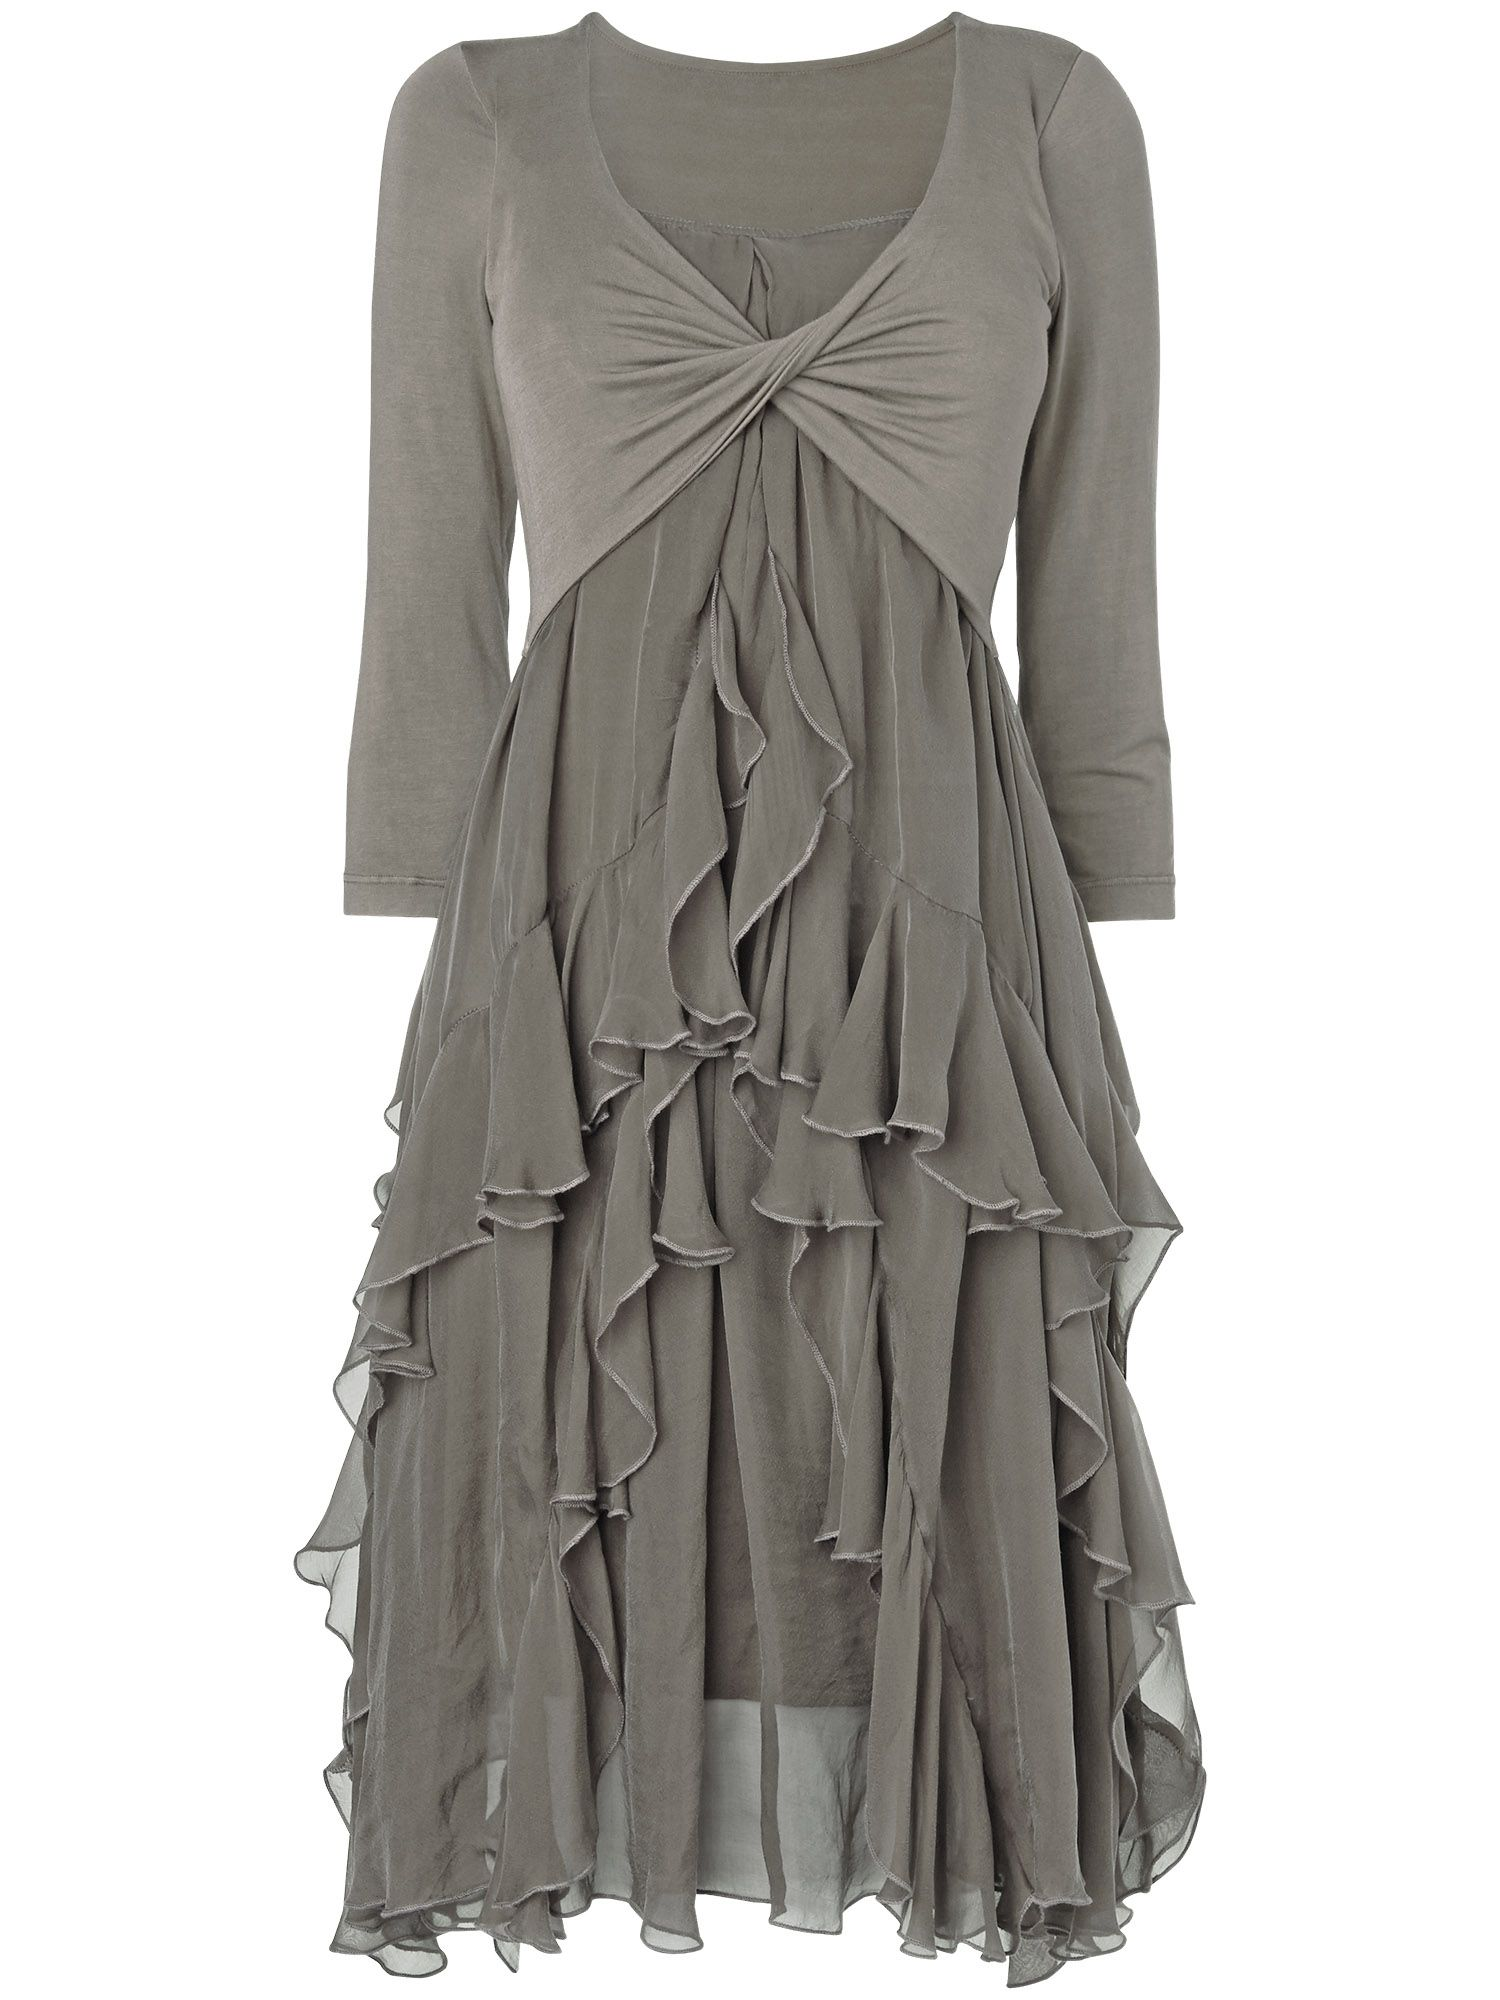 Kells silk jersey dress